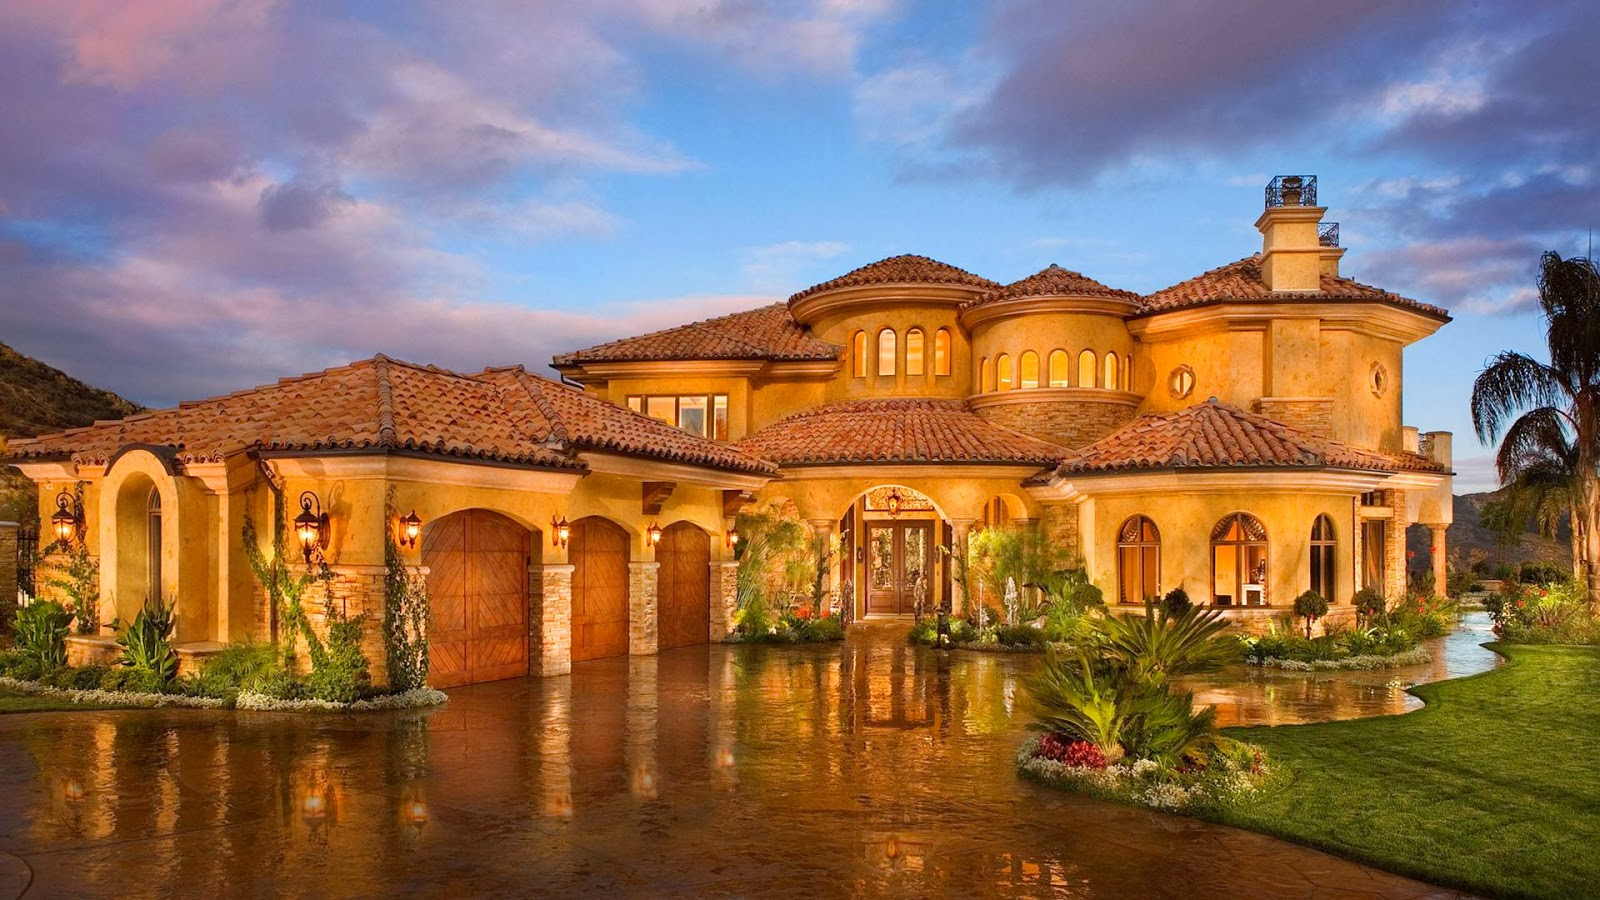 Tricked out mansions showcasing luxury houses how to do for California million dollar homes